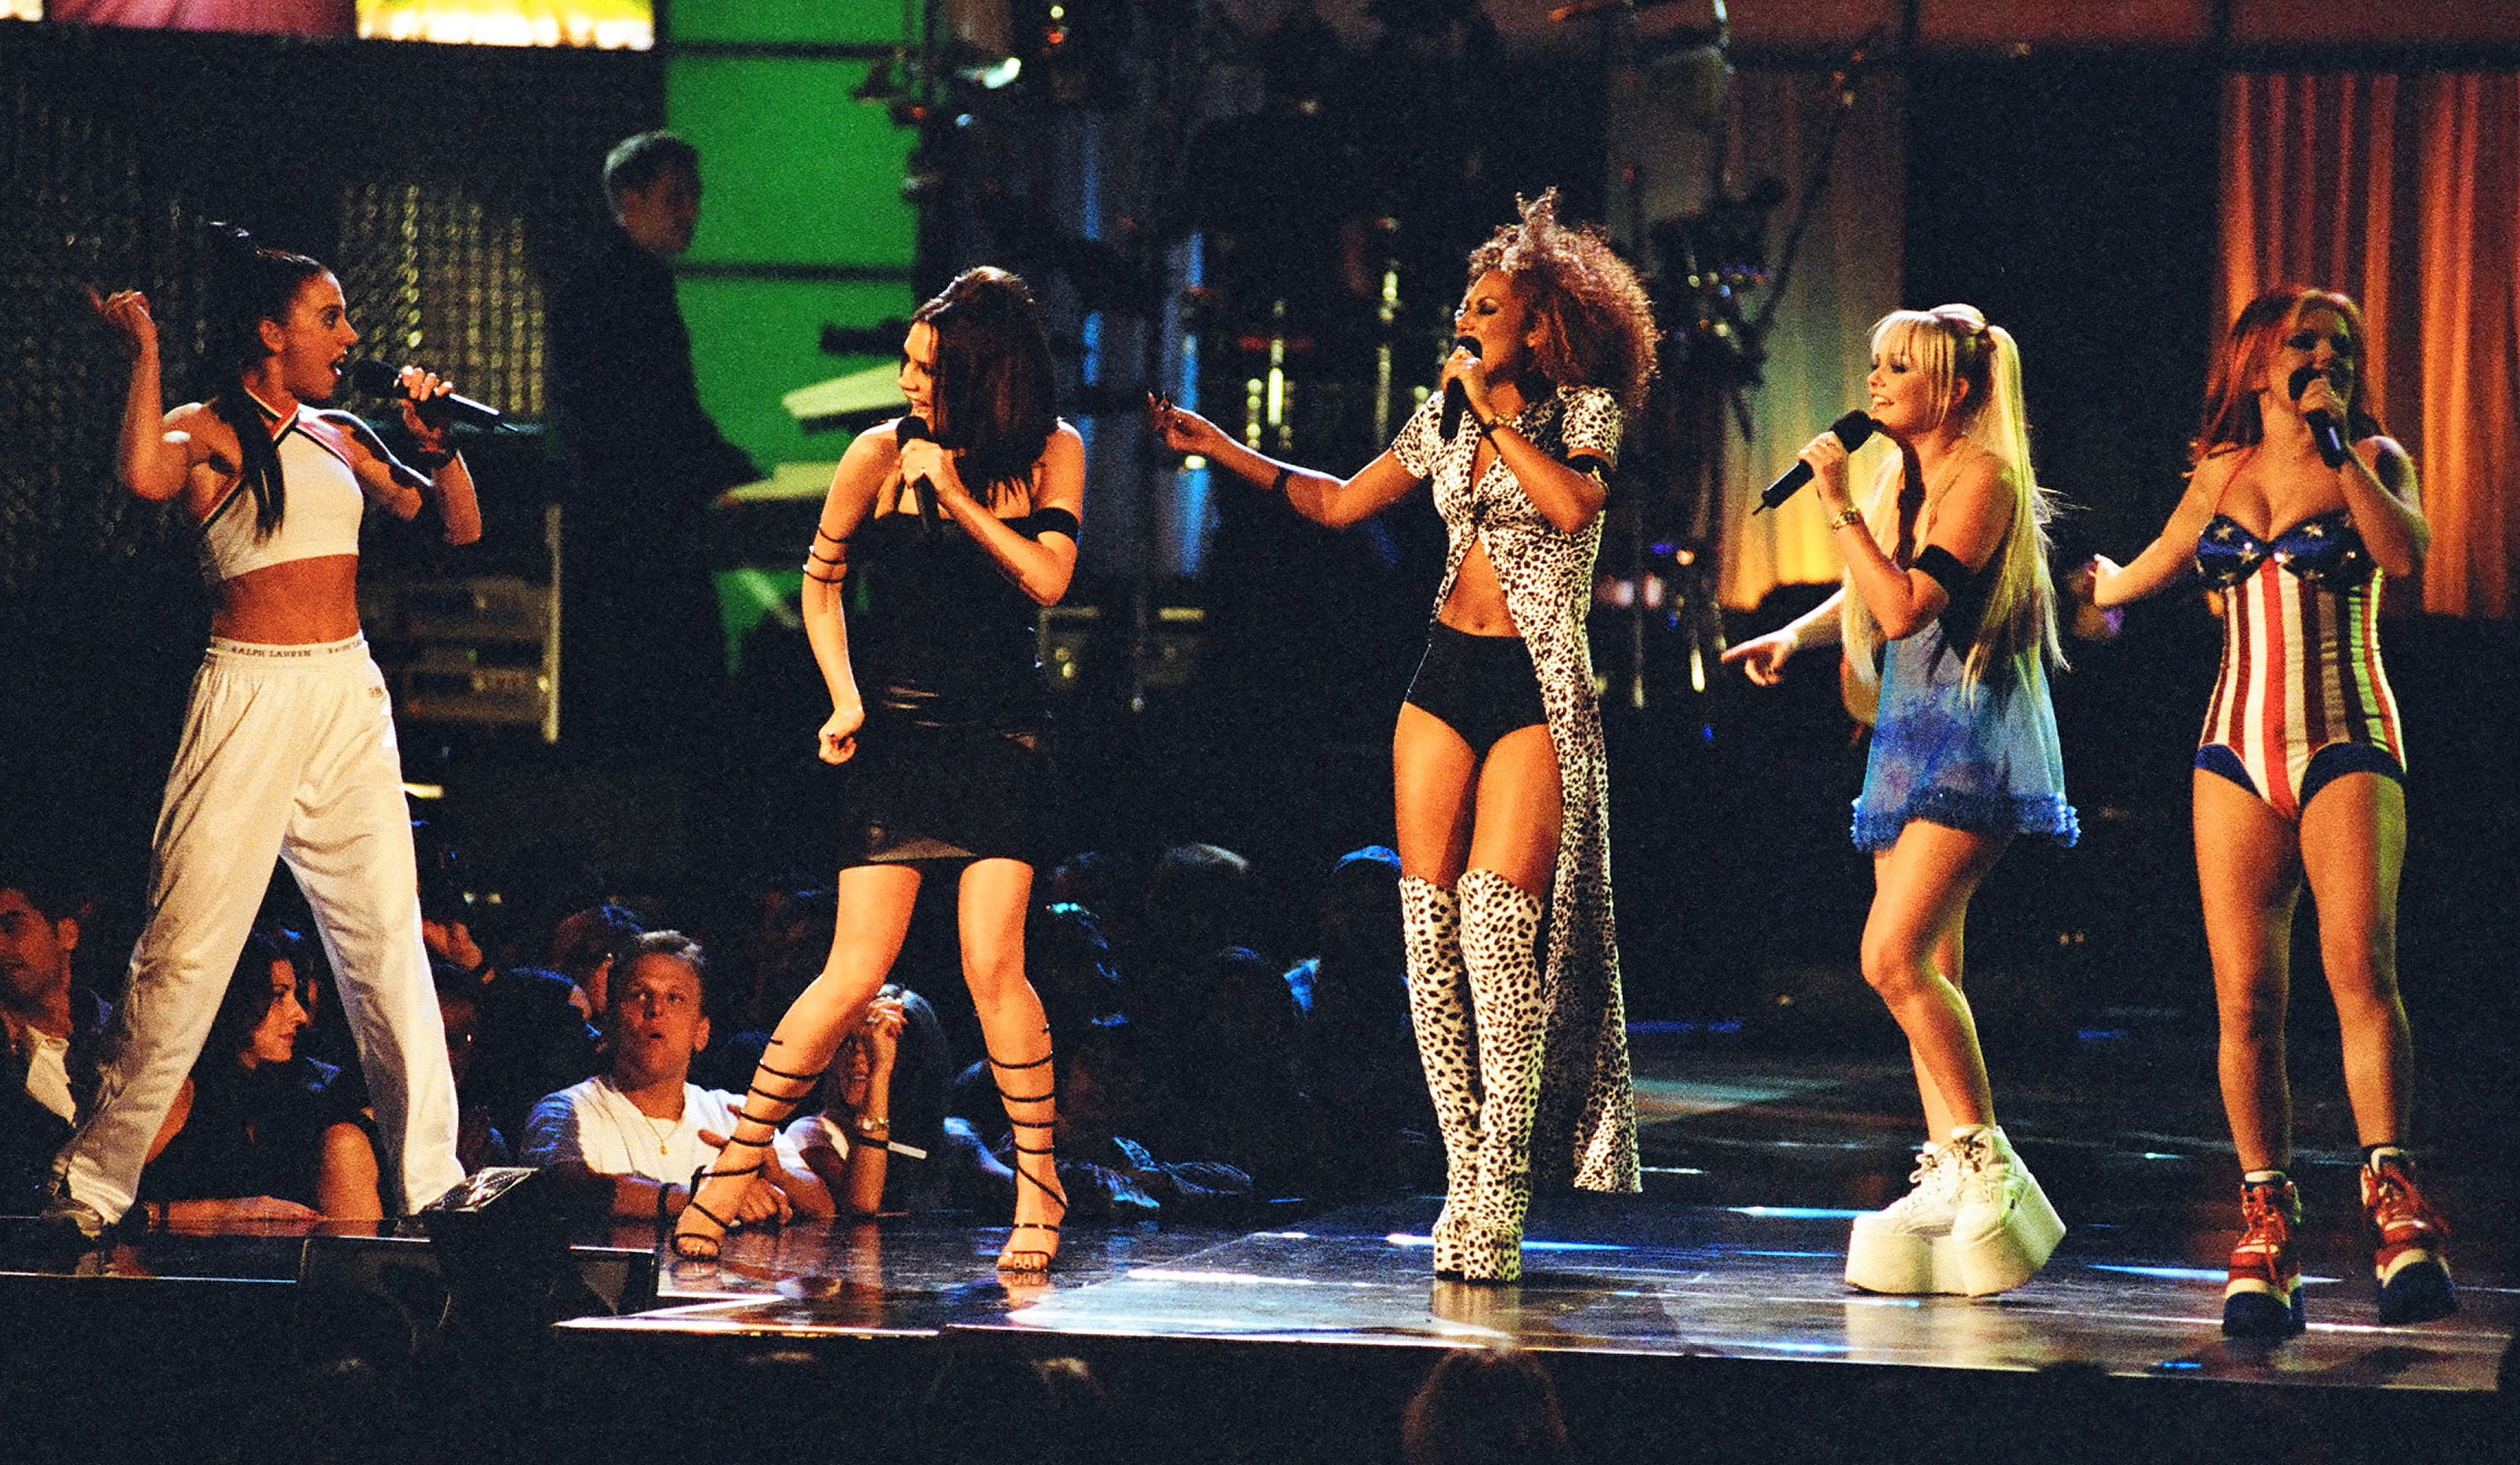 Victoria Beckham, Mel C, Emma Bunton, Geri Halliwell and Mel B from The Spice Girls (Photo by Jeff Kravitz/FilmMagic, Inc)